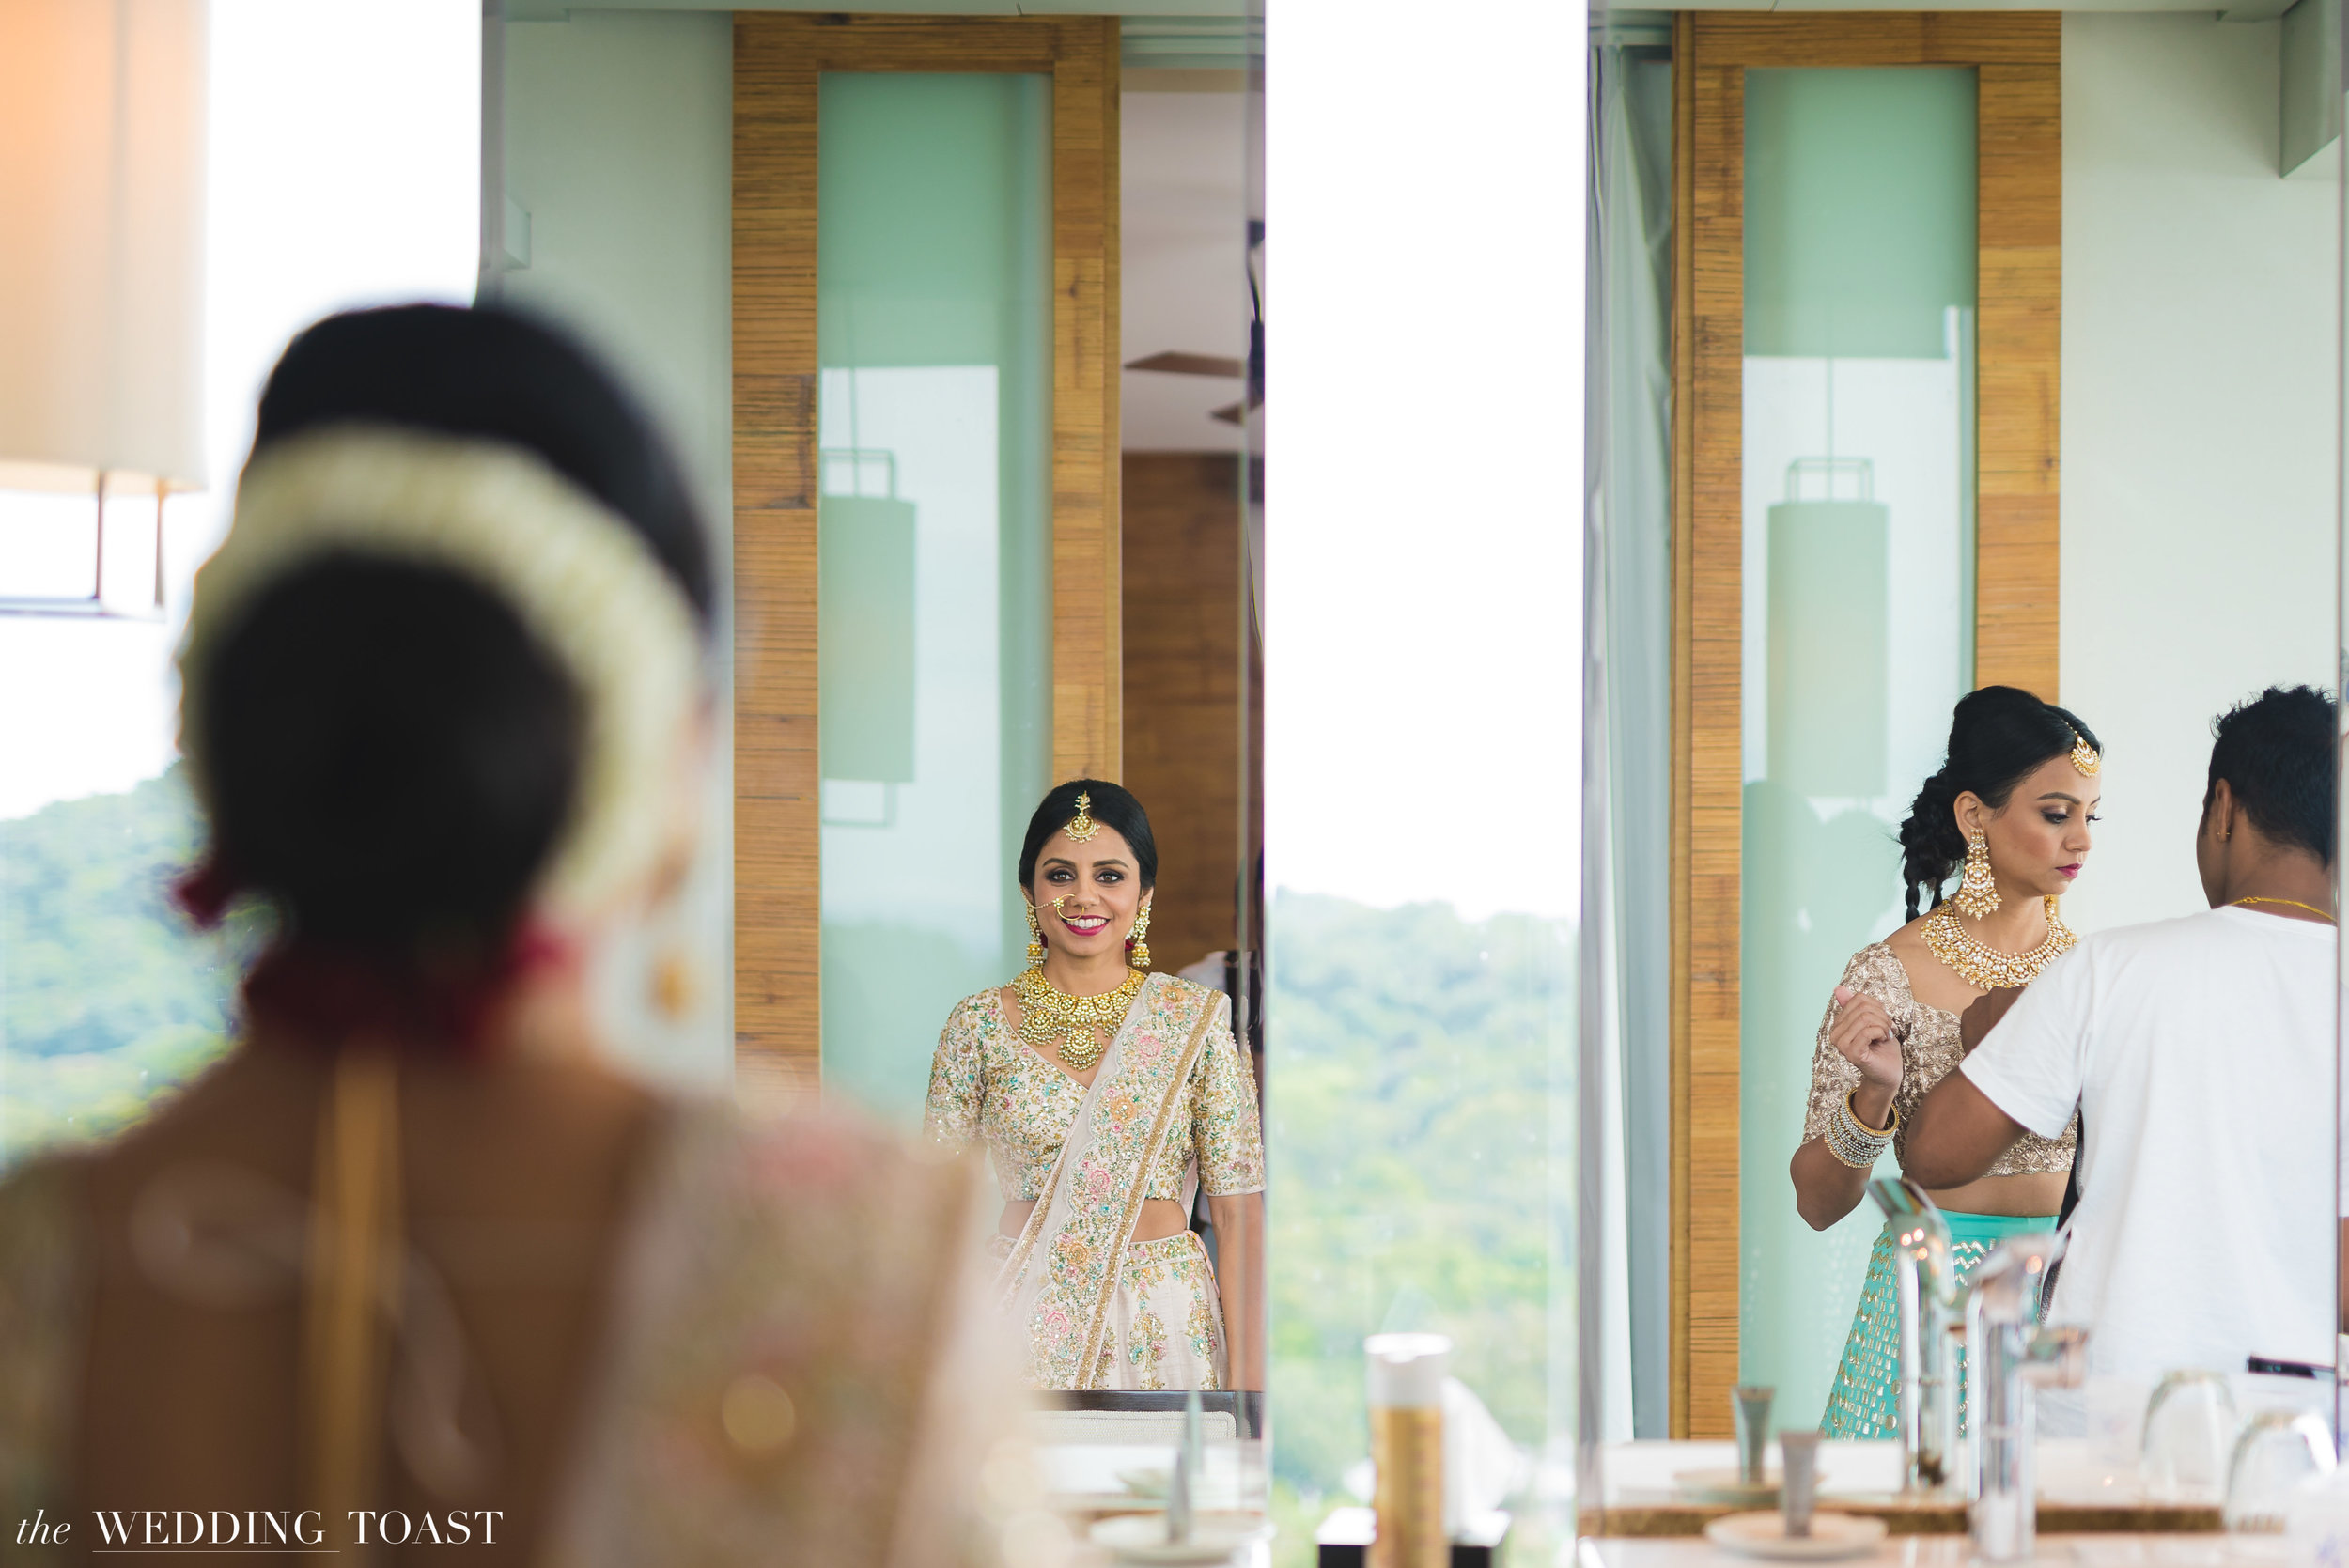 Anuraag Rathi The Wedding Toast-134.jpg